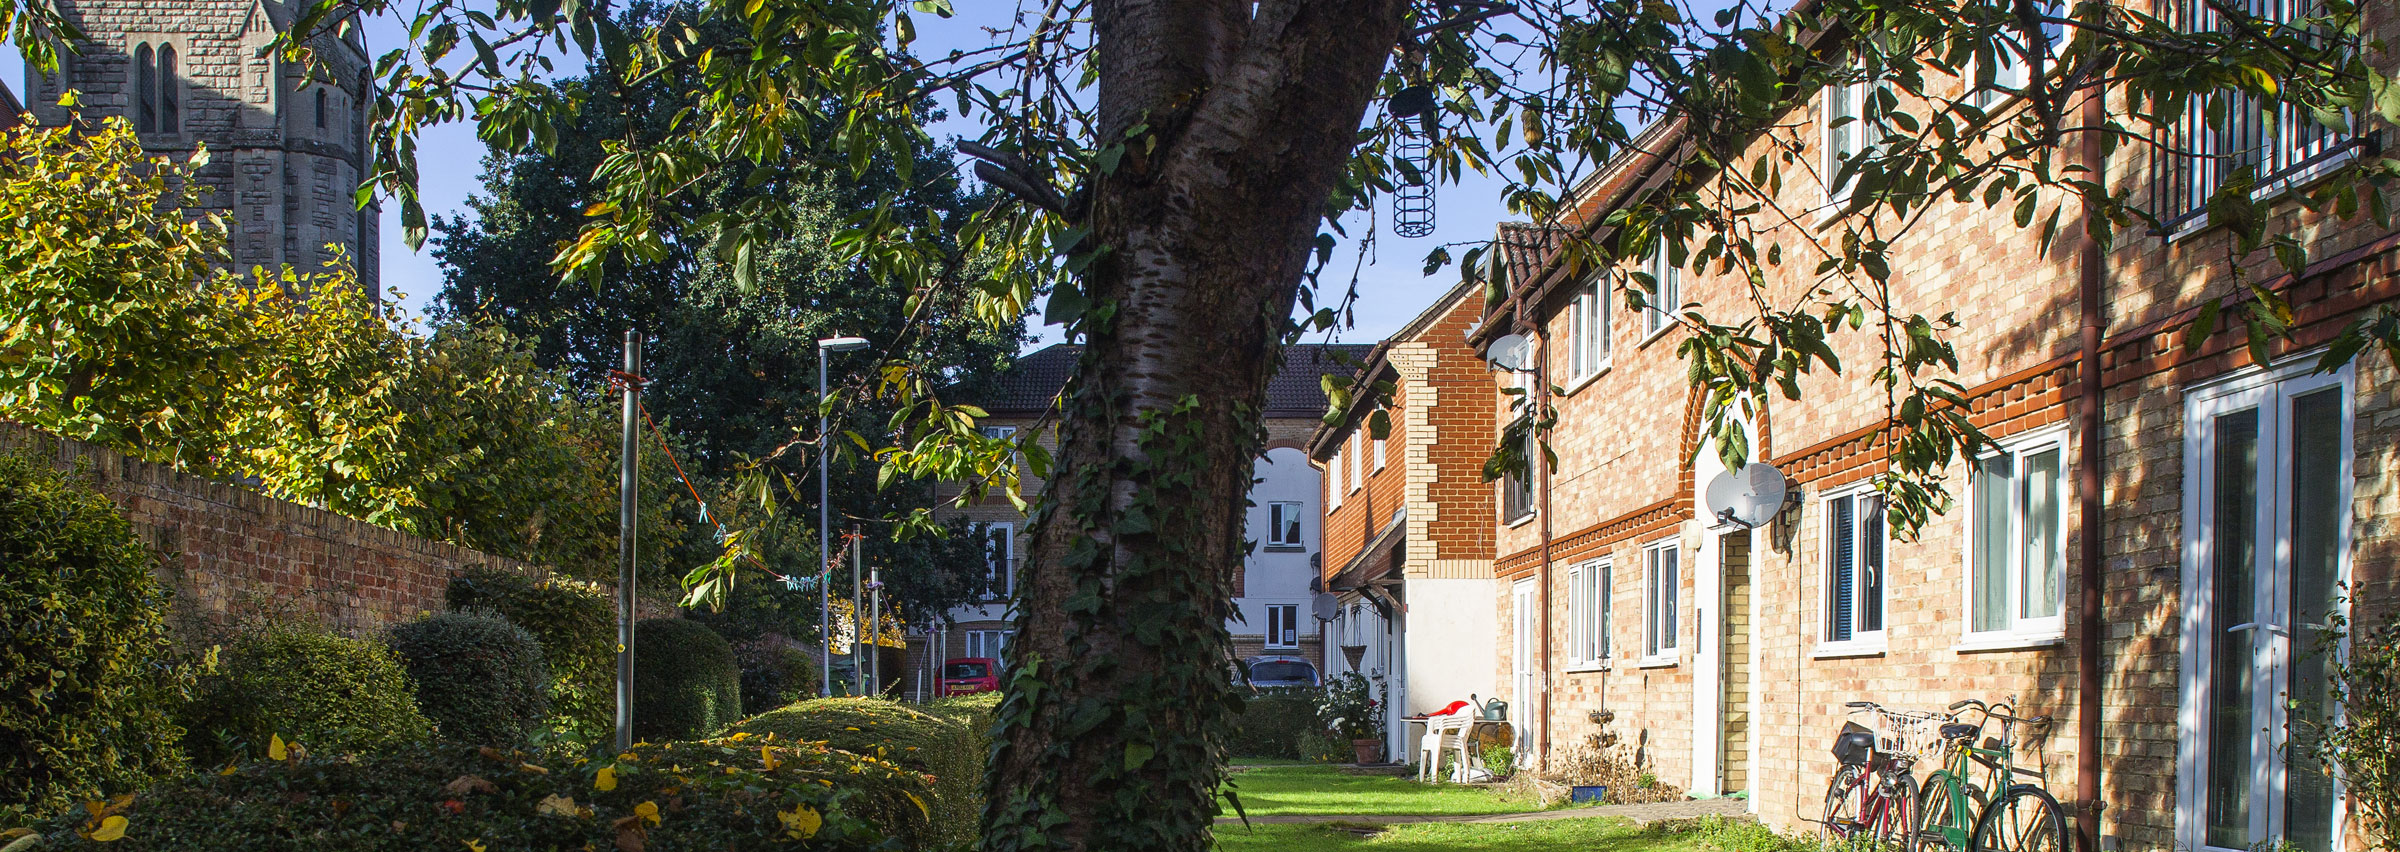 Find a rented property thats right for you in March Cambridgeshire